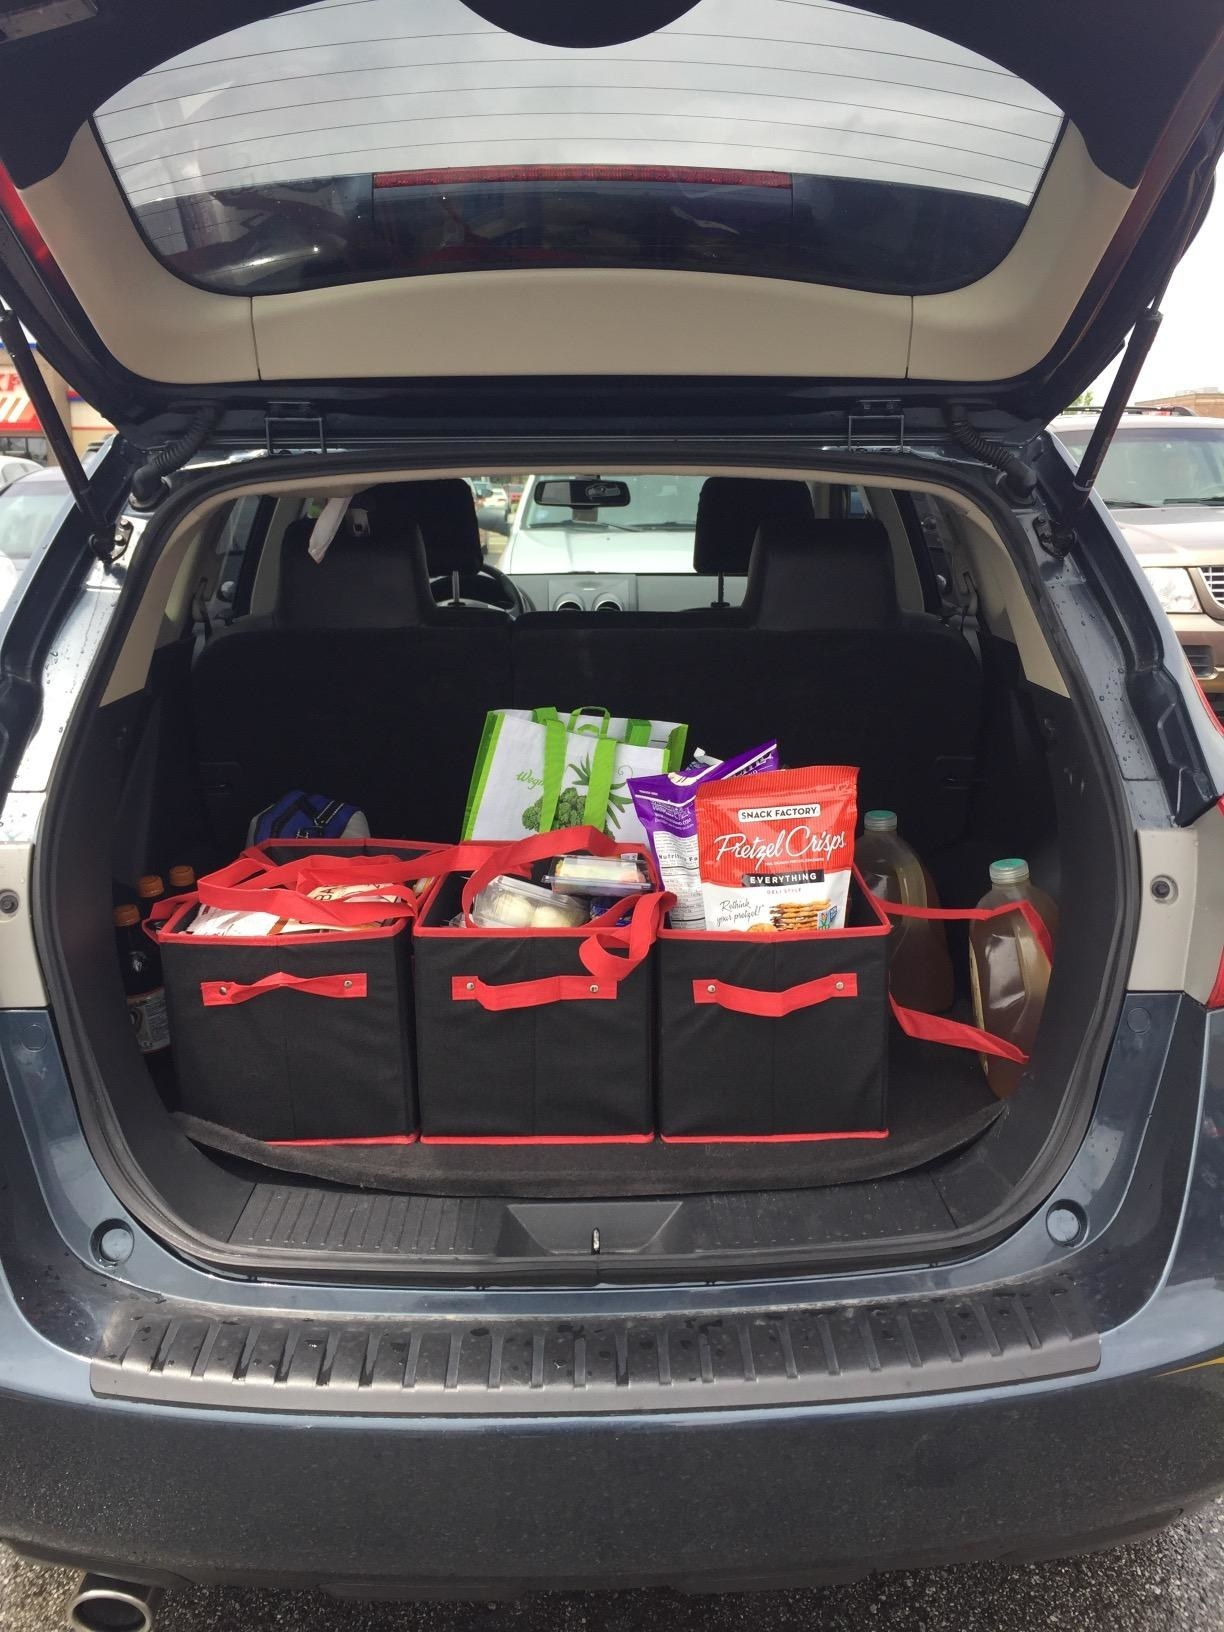 reviewer image of three black fabric bags with red handles and straps in the back of a car